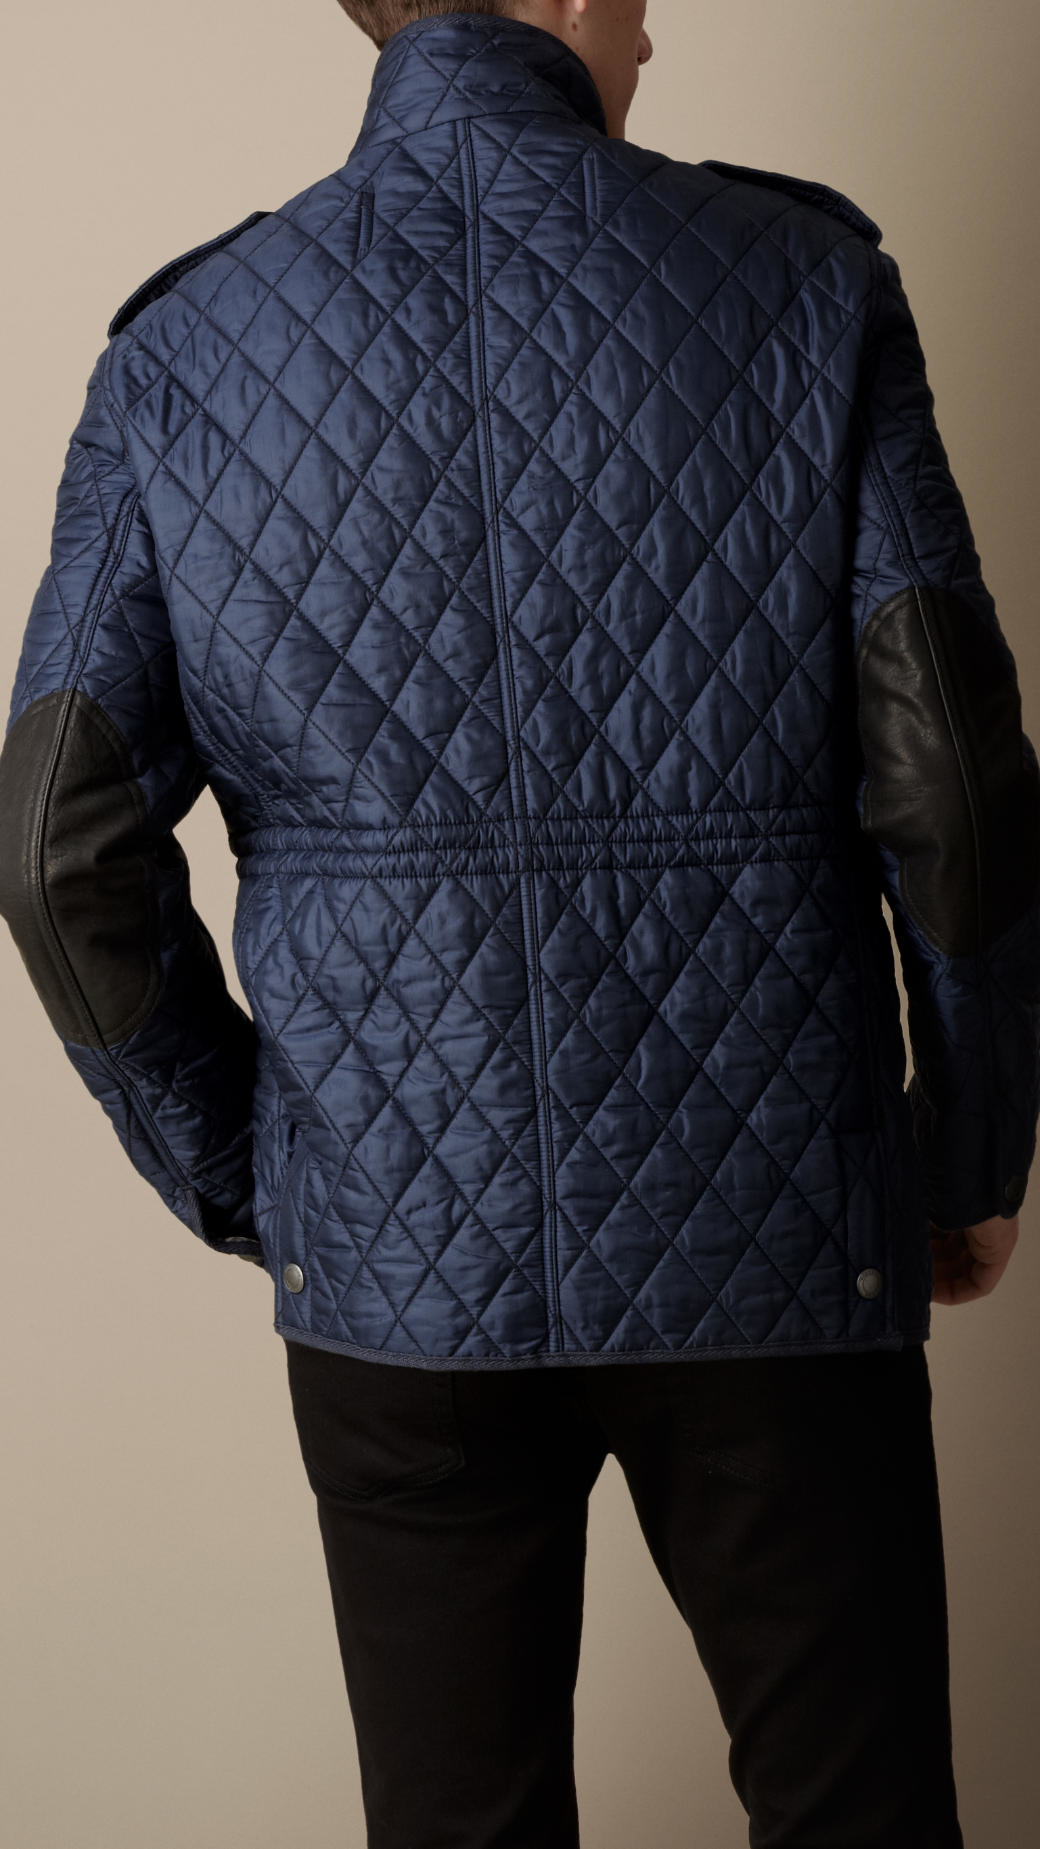 Burberry Diamond Quilted Field Jacket In Navy Blue For Men Lyst